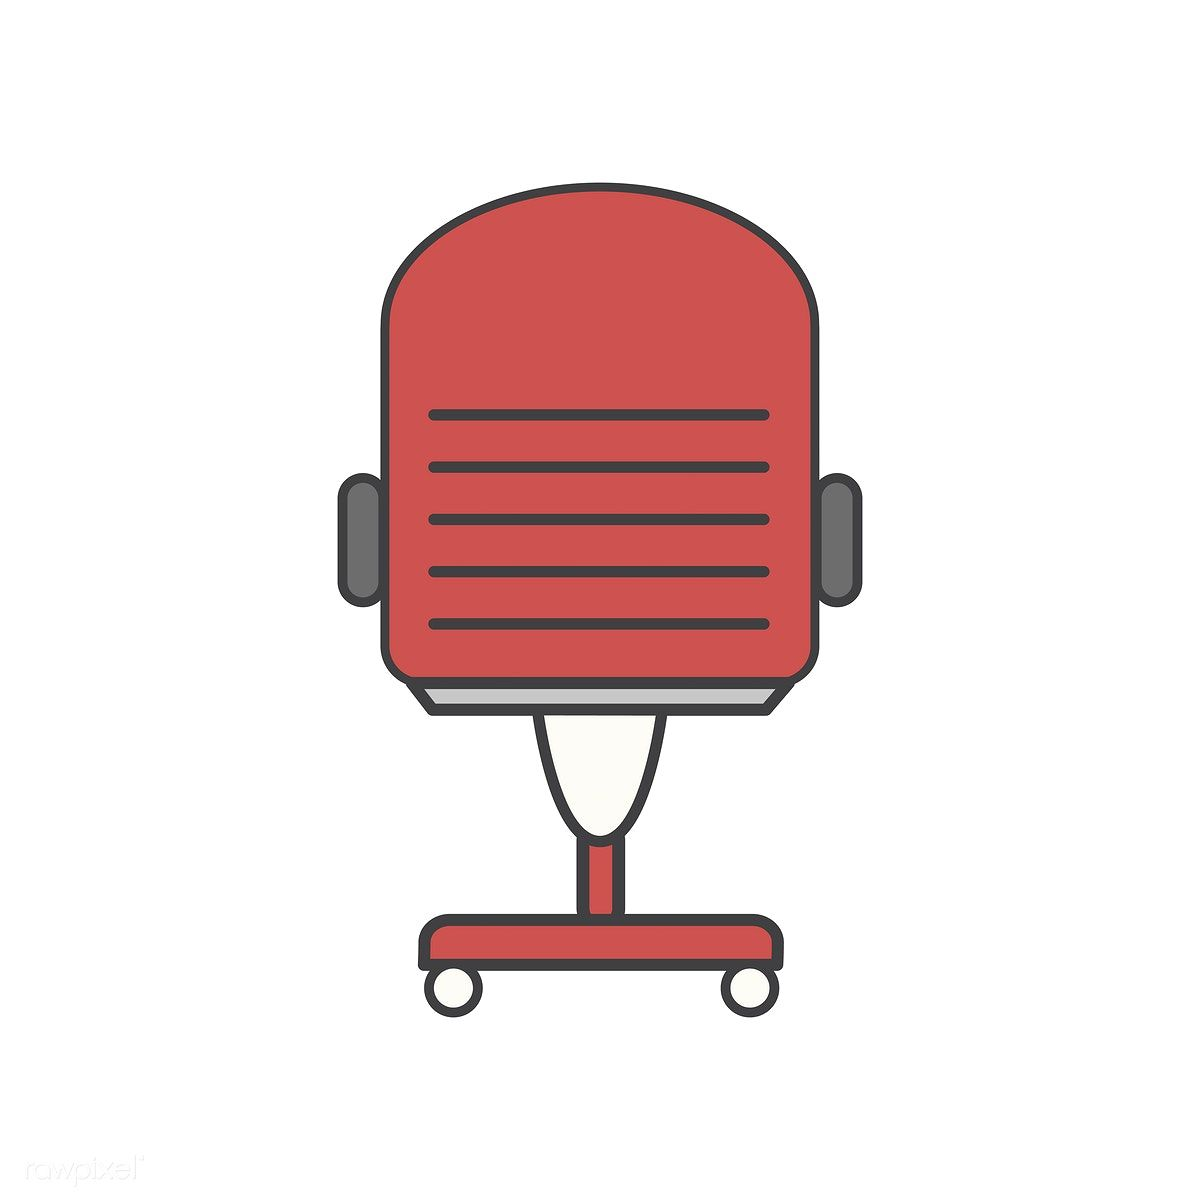 illustration of office chair icon free image by rawpixel com rh pinterest com Icon Office Chair No Backgroujd Office Chair Clip Art